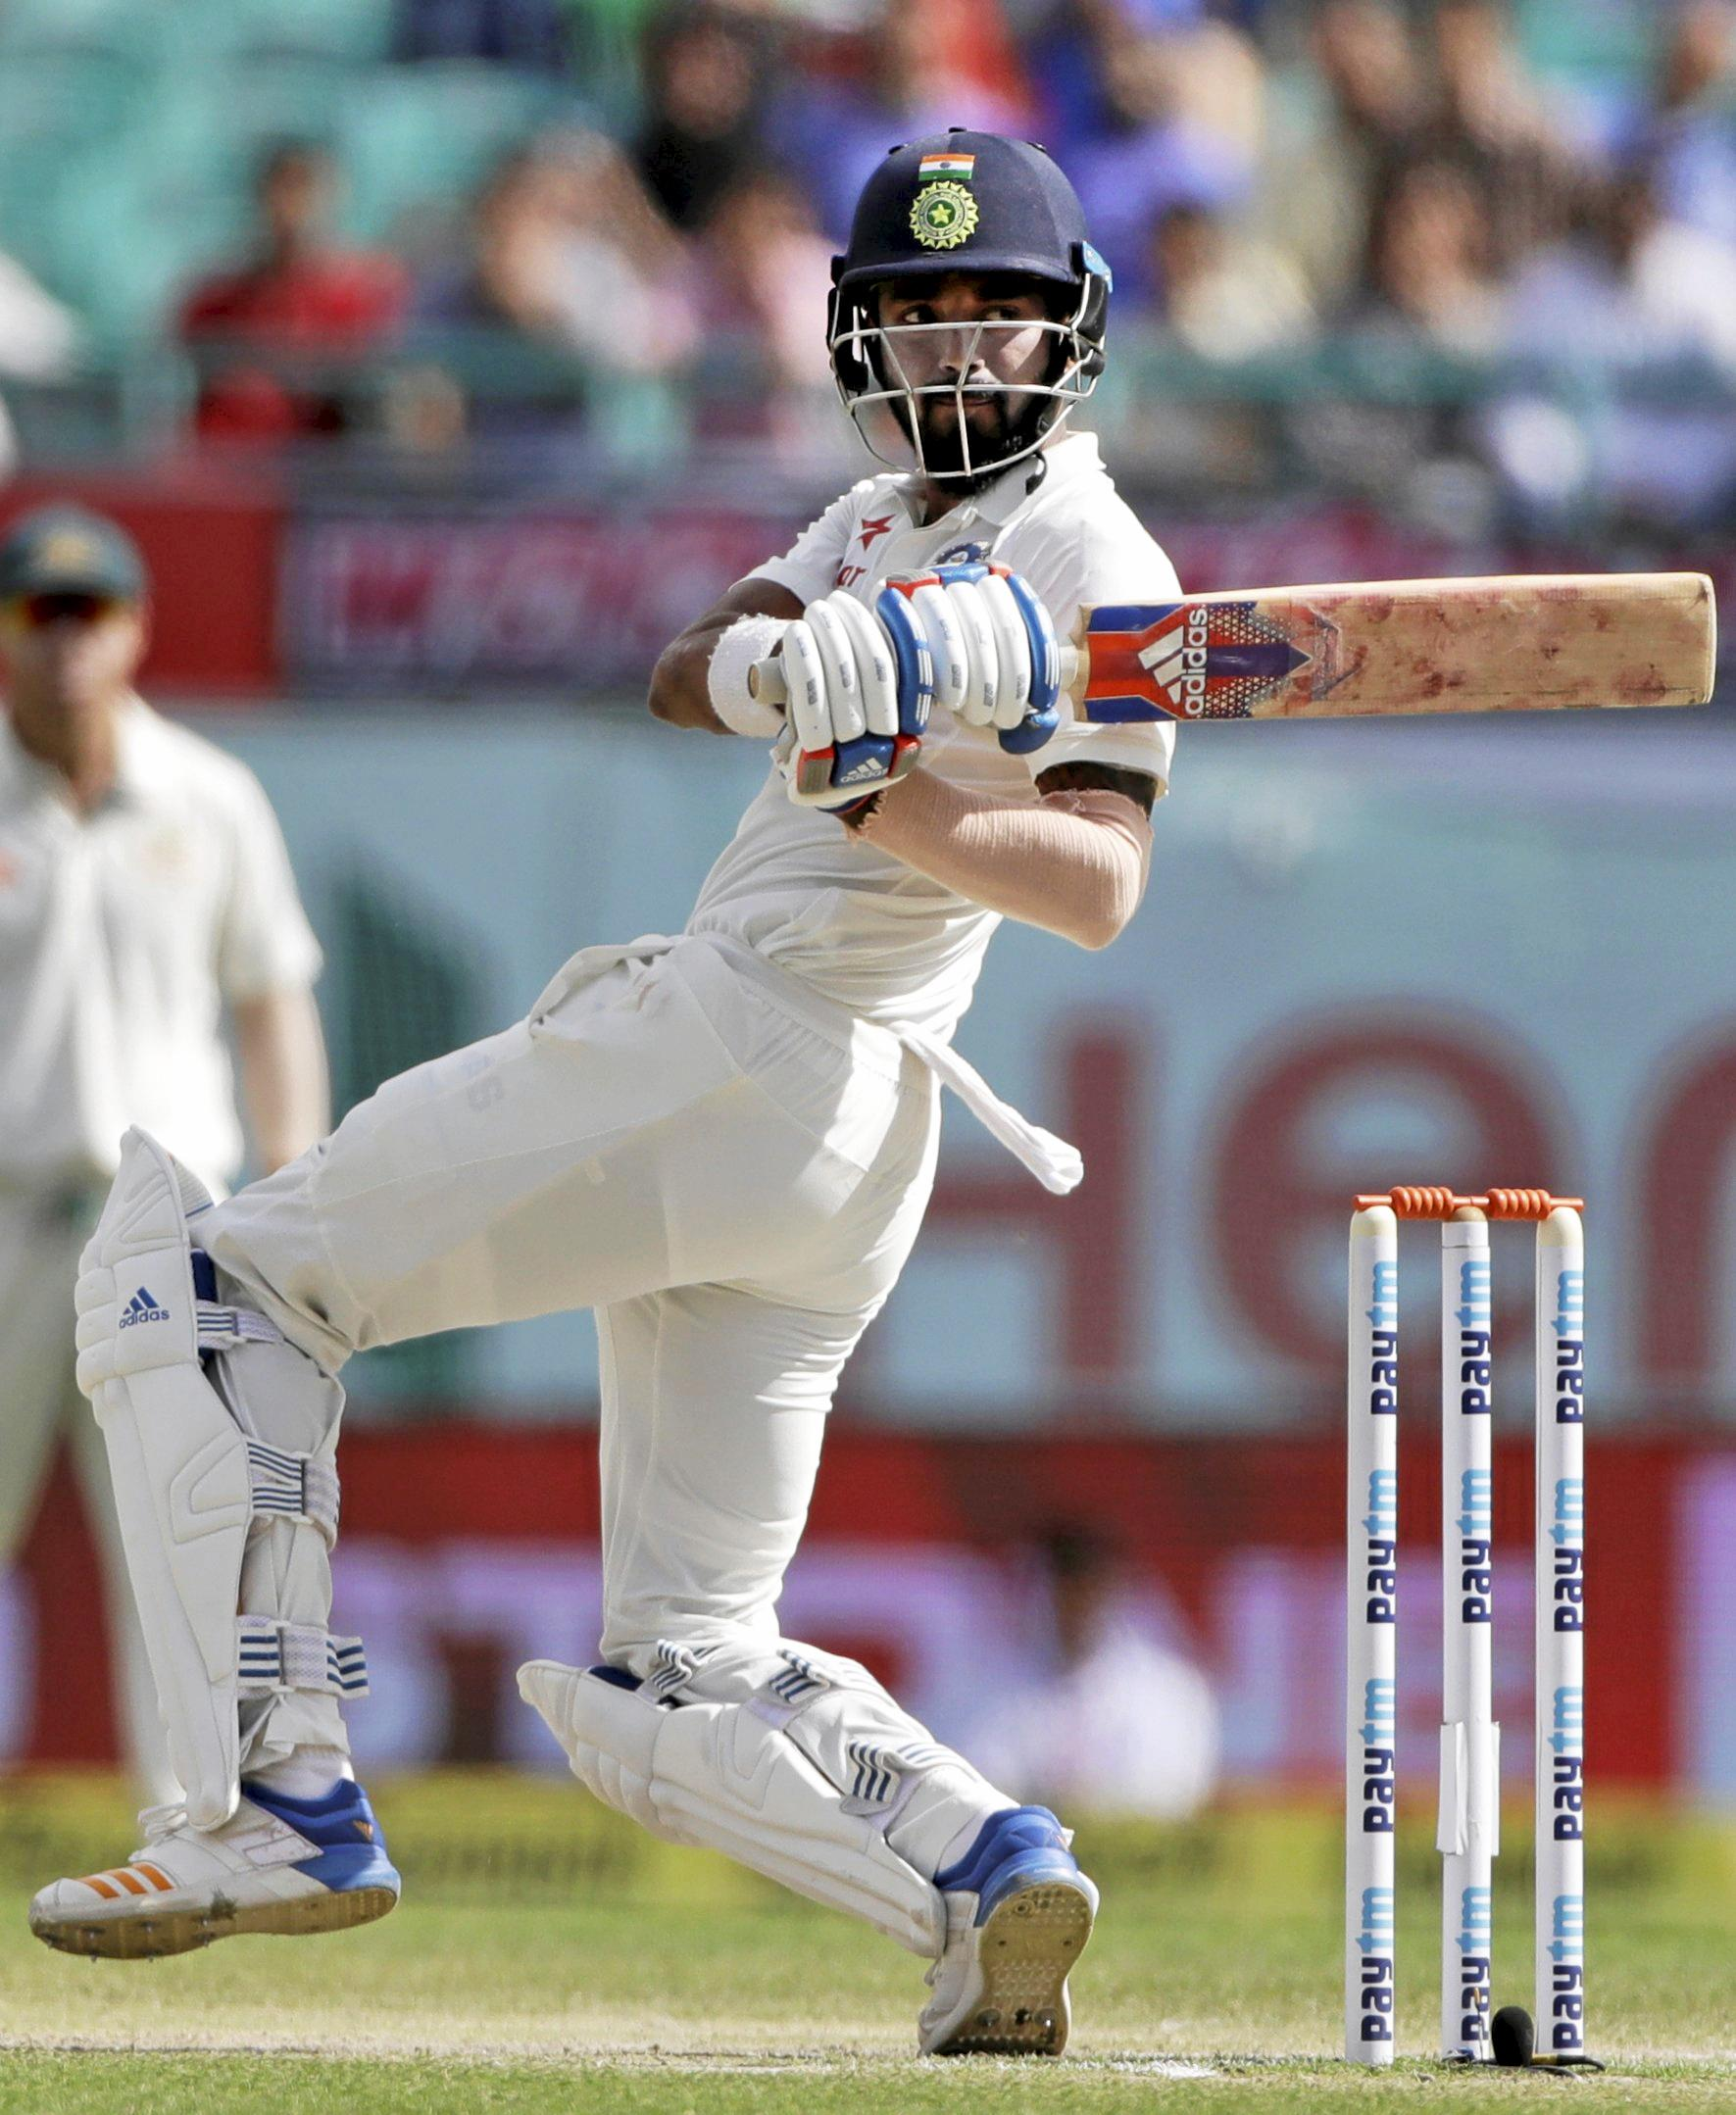 India's KL Rahul plays a shot during the fourth day of the fourth Test cricket against Australia in Dharmsala.